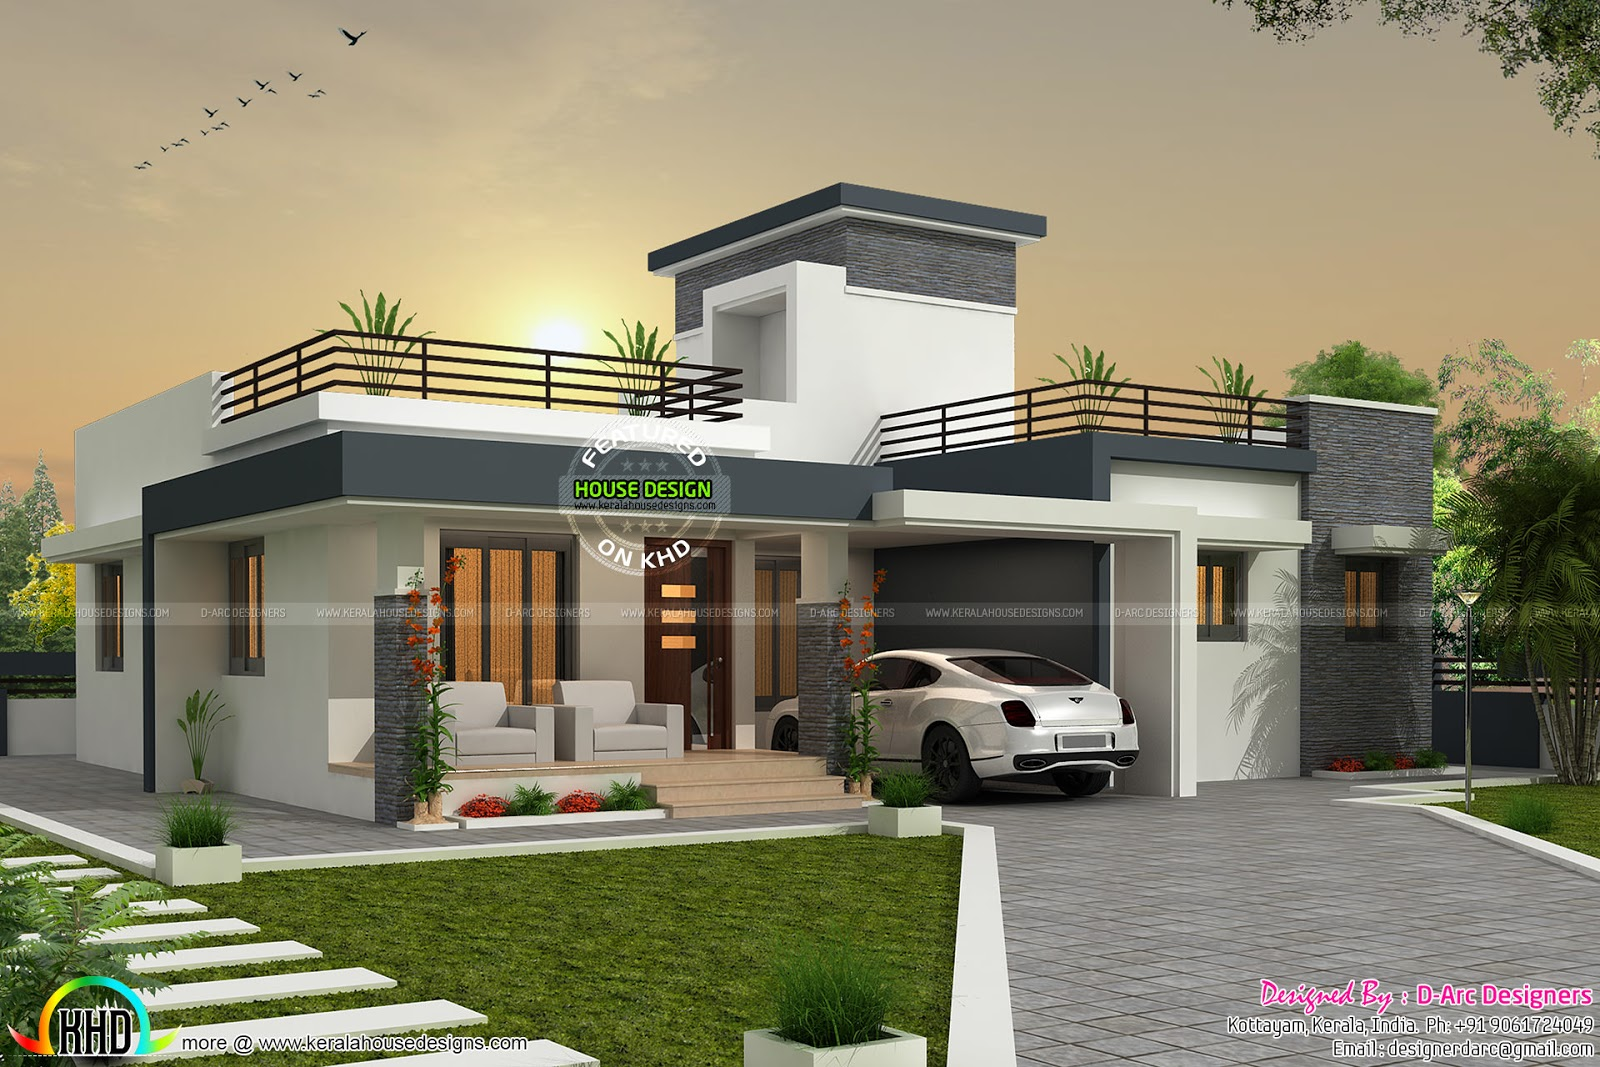 One Square Meter In Square Feet January 2016 Kerala Home Design And Floor Plans